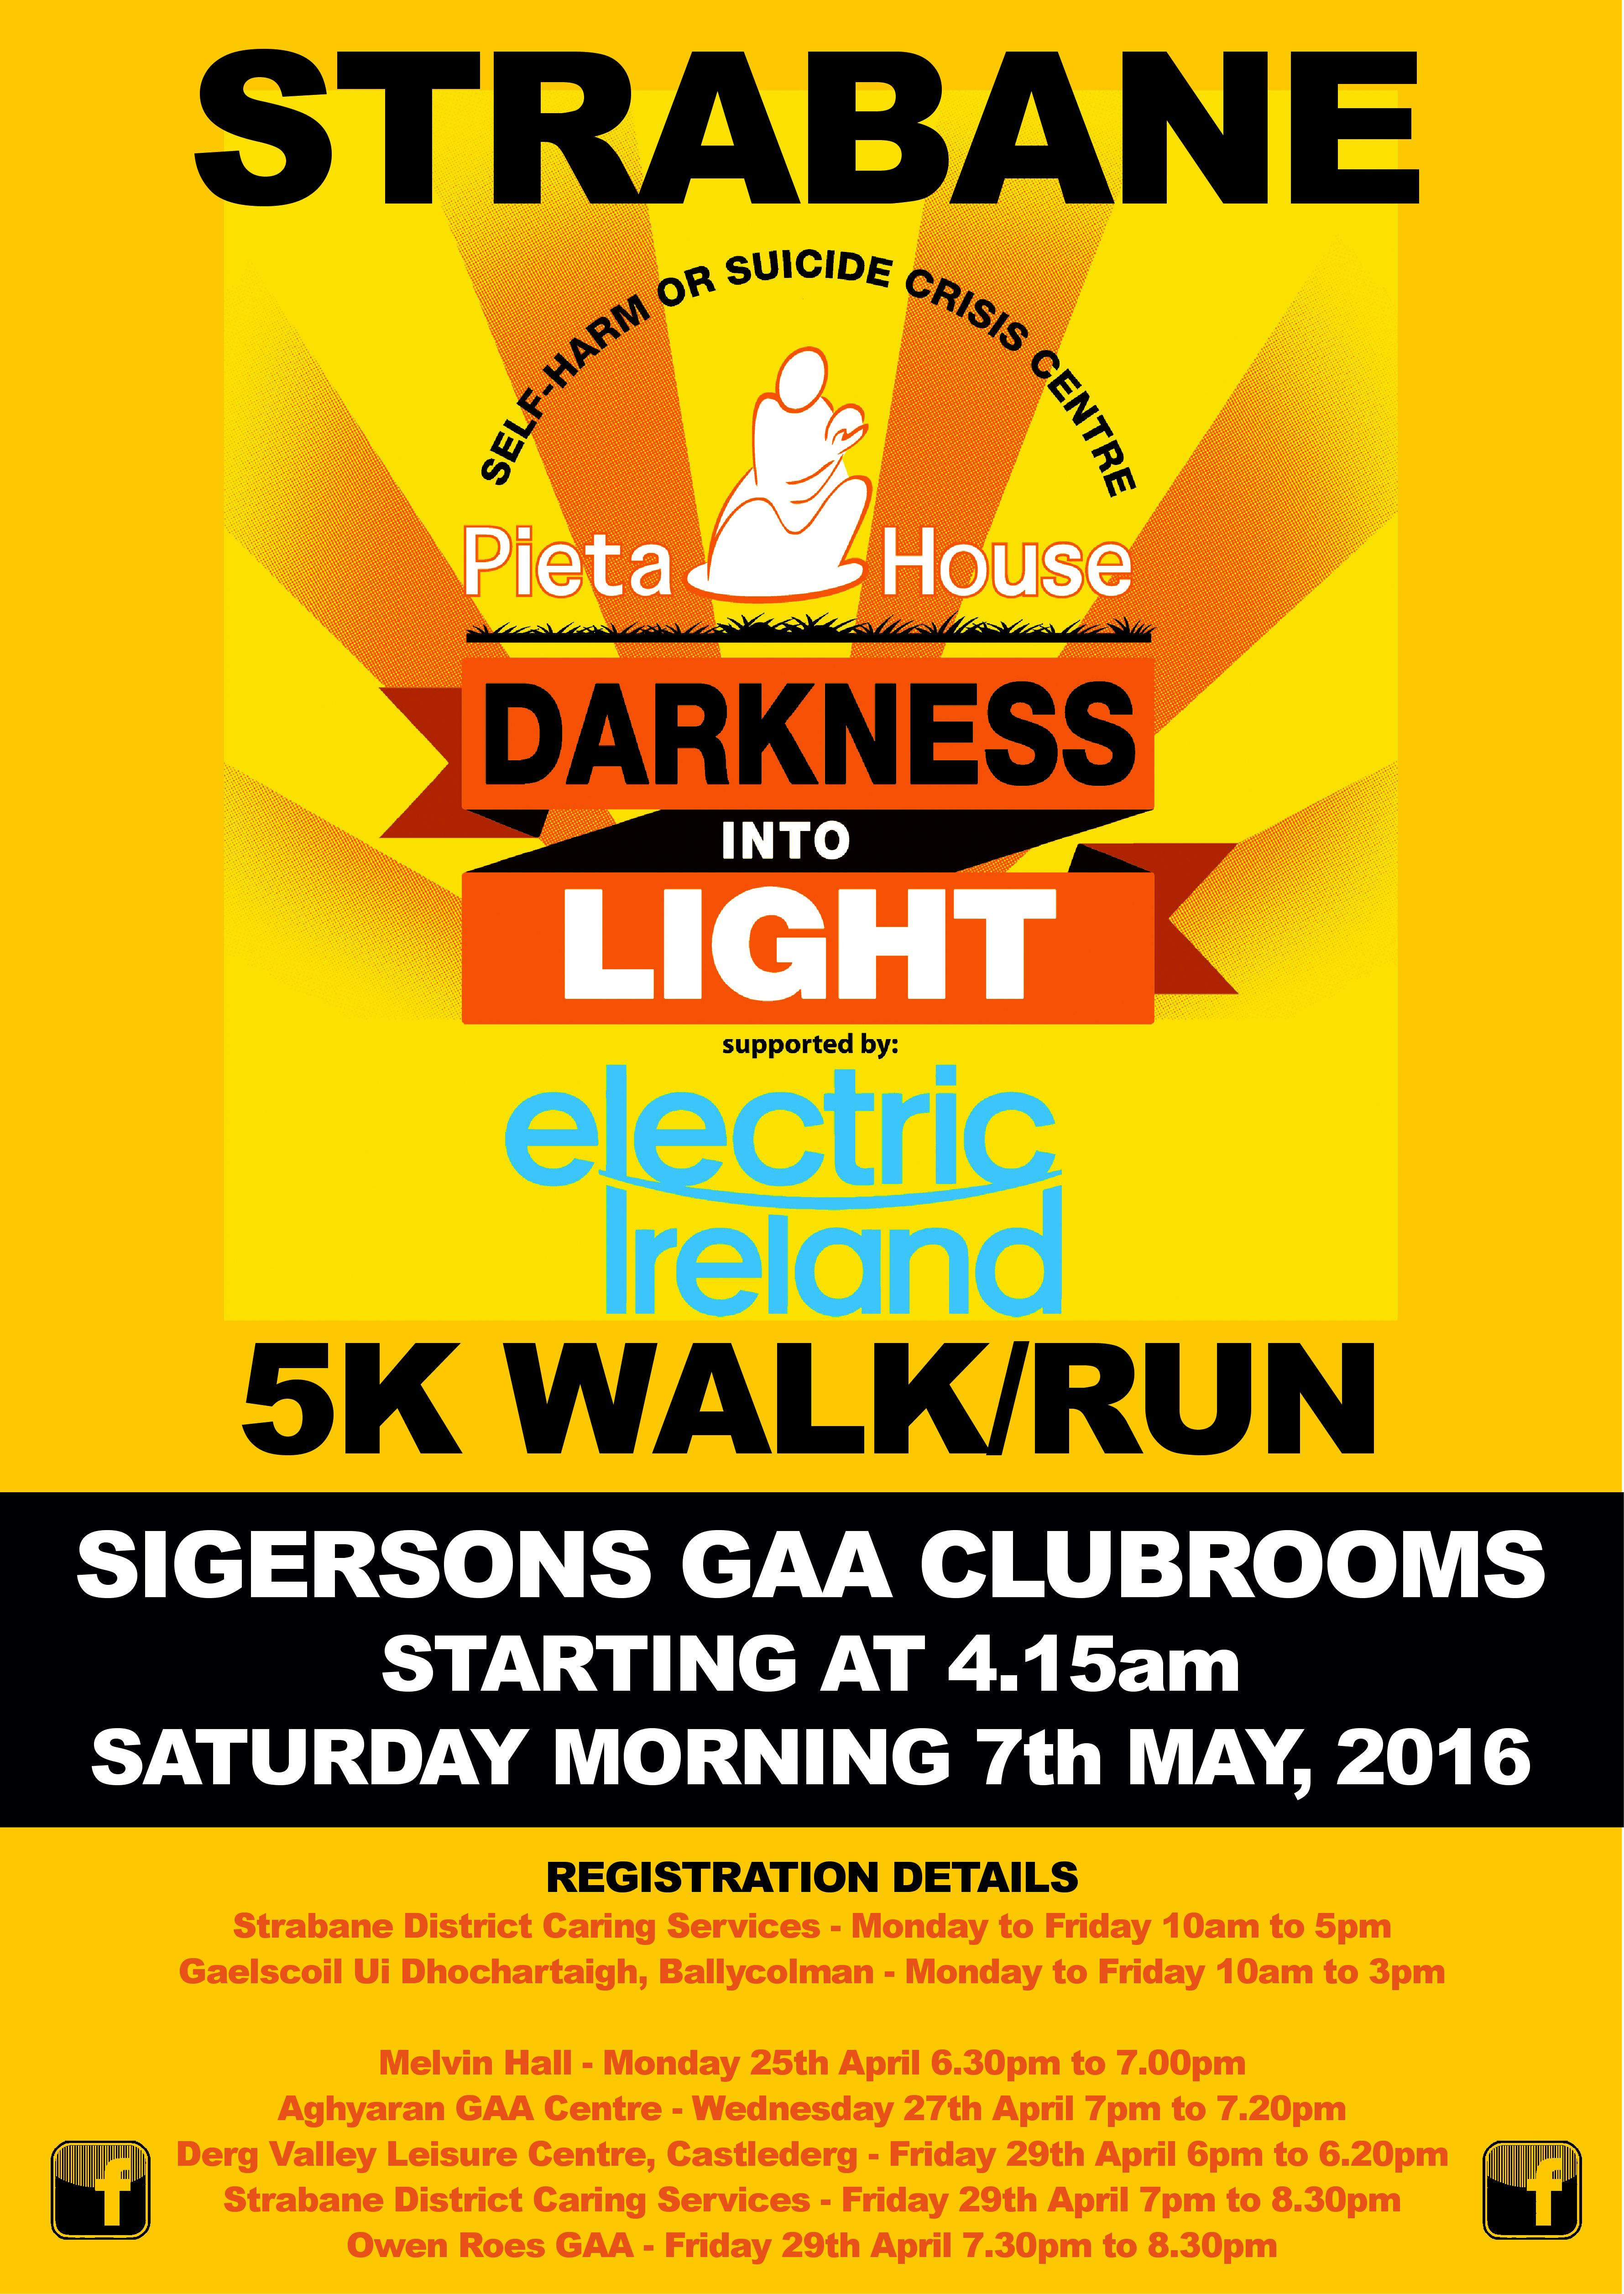 Strabane Sigerson's Darkness Into Light